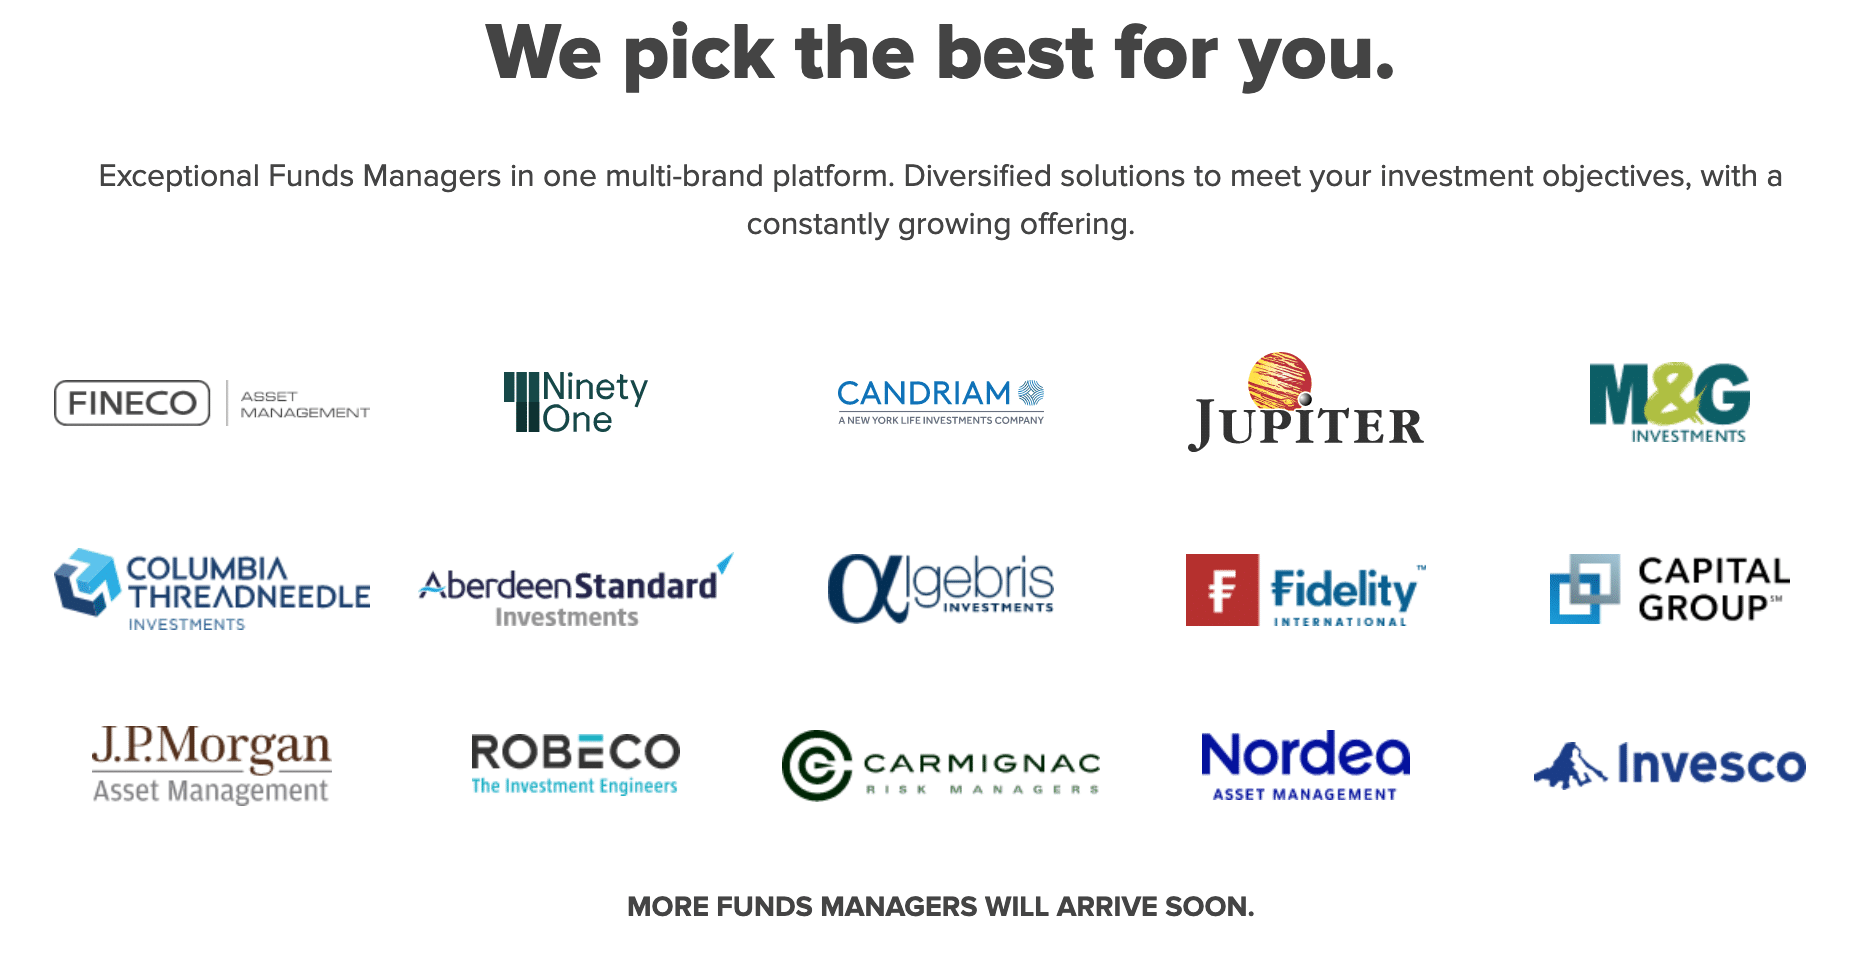 fineco invest in fixed income funds